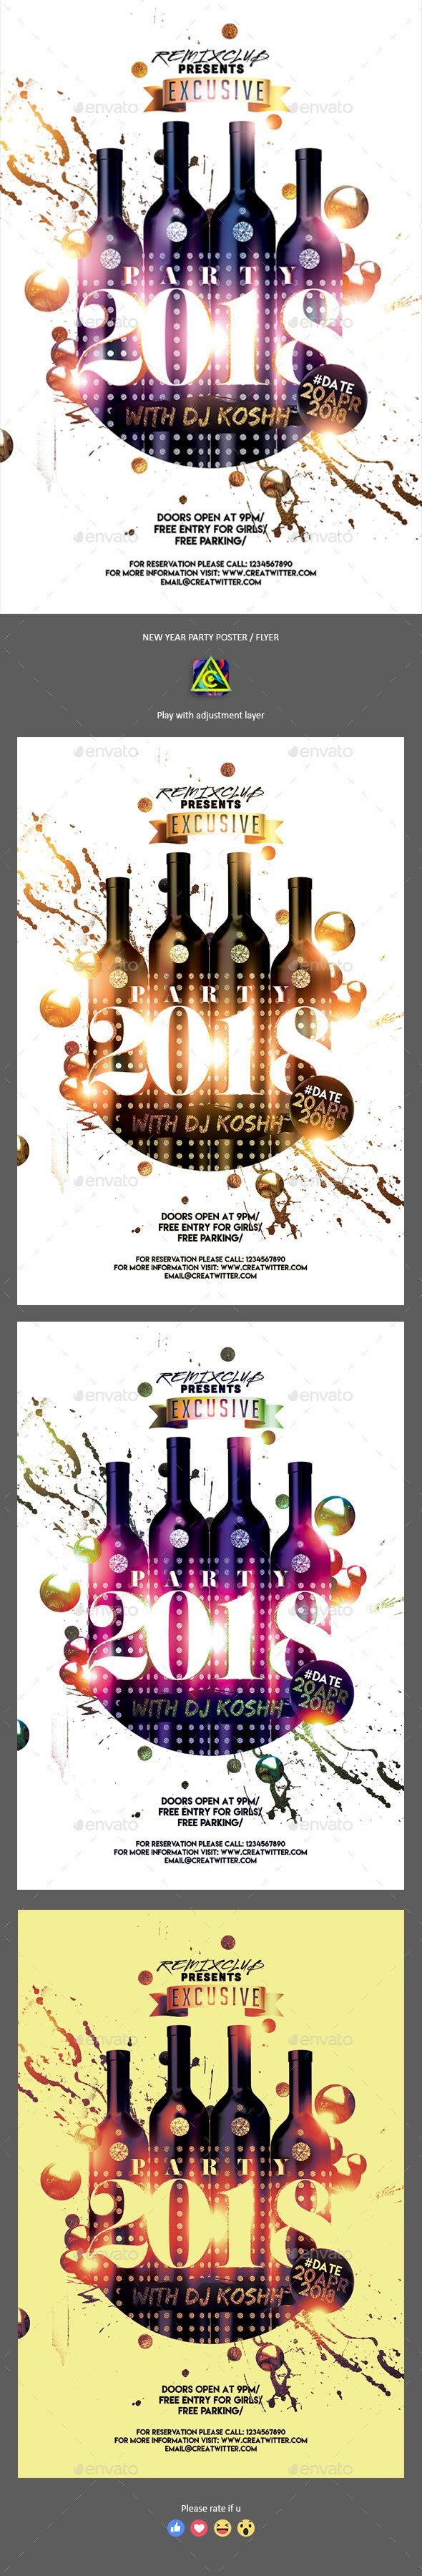 flyers ideas for events